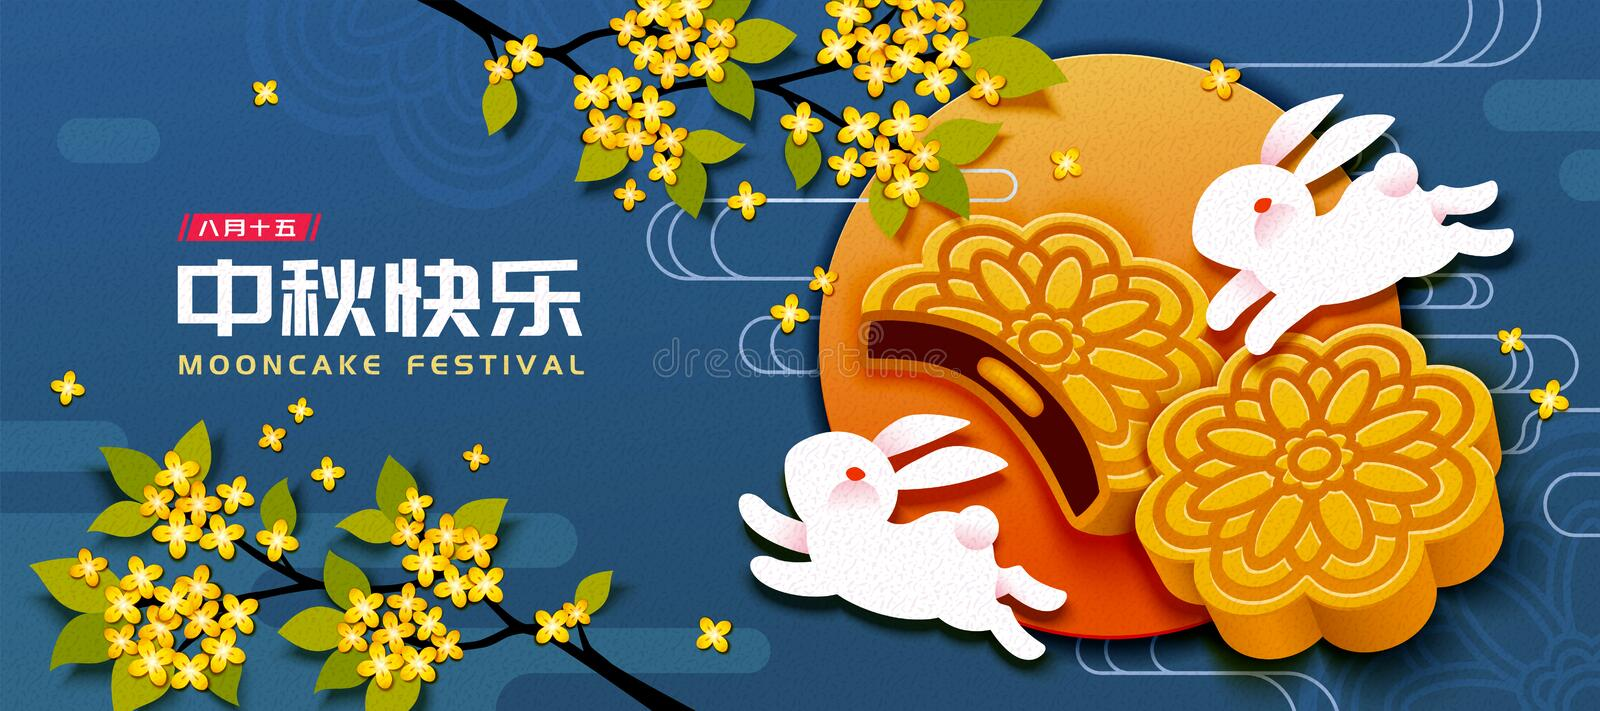 Traditional pastry mooncake. Mooncake festival with white rabbit and delicious pastry on blue background, Mid autumn holiday written in Chinese words vector illustration